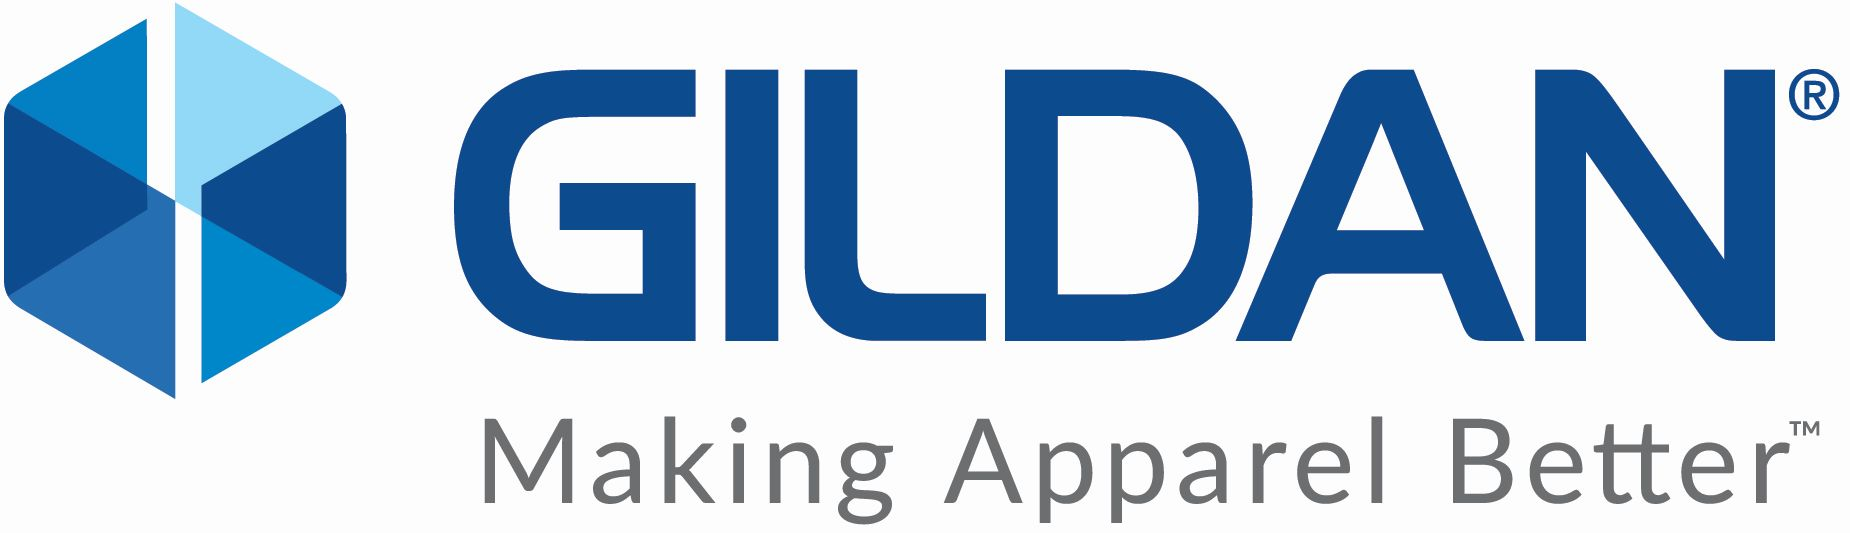 Gildan reaches Leadership level in CDP's 2019 scores for corporate transparency and action on climate change